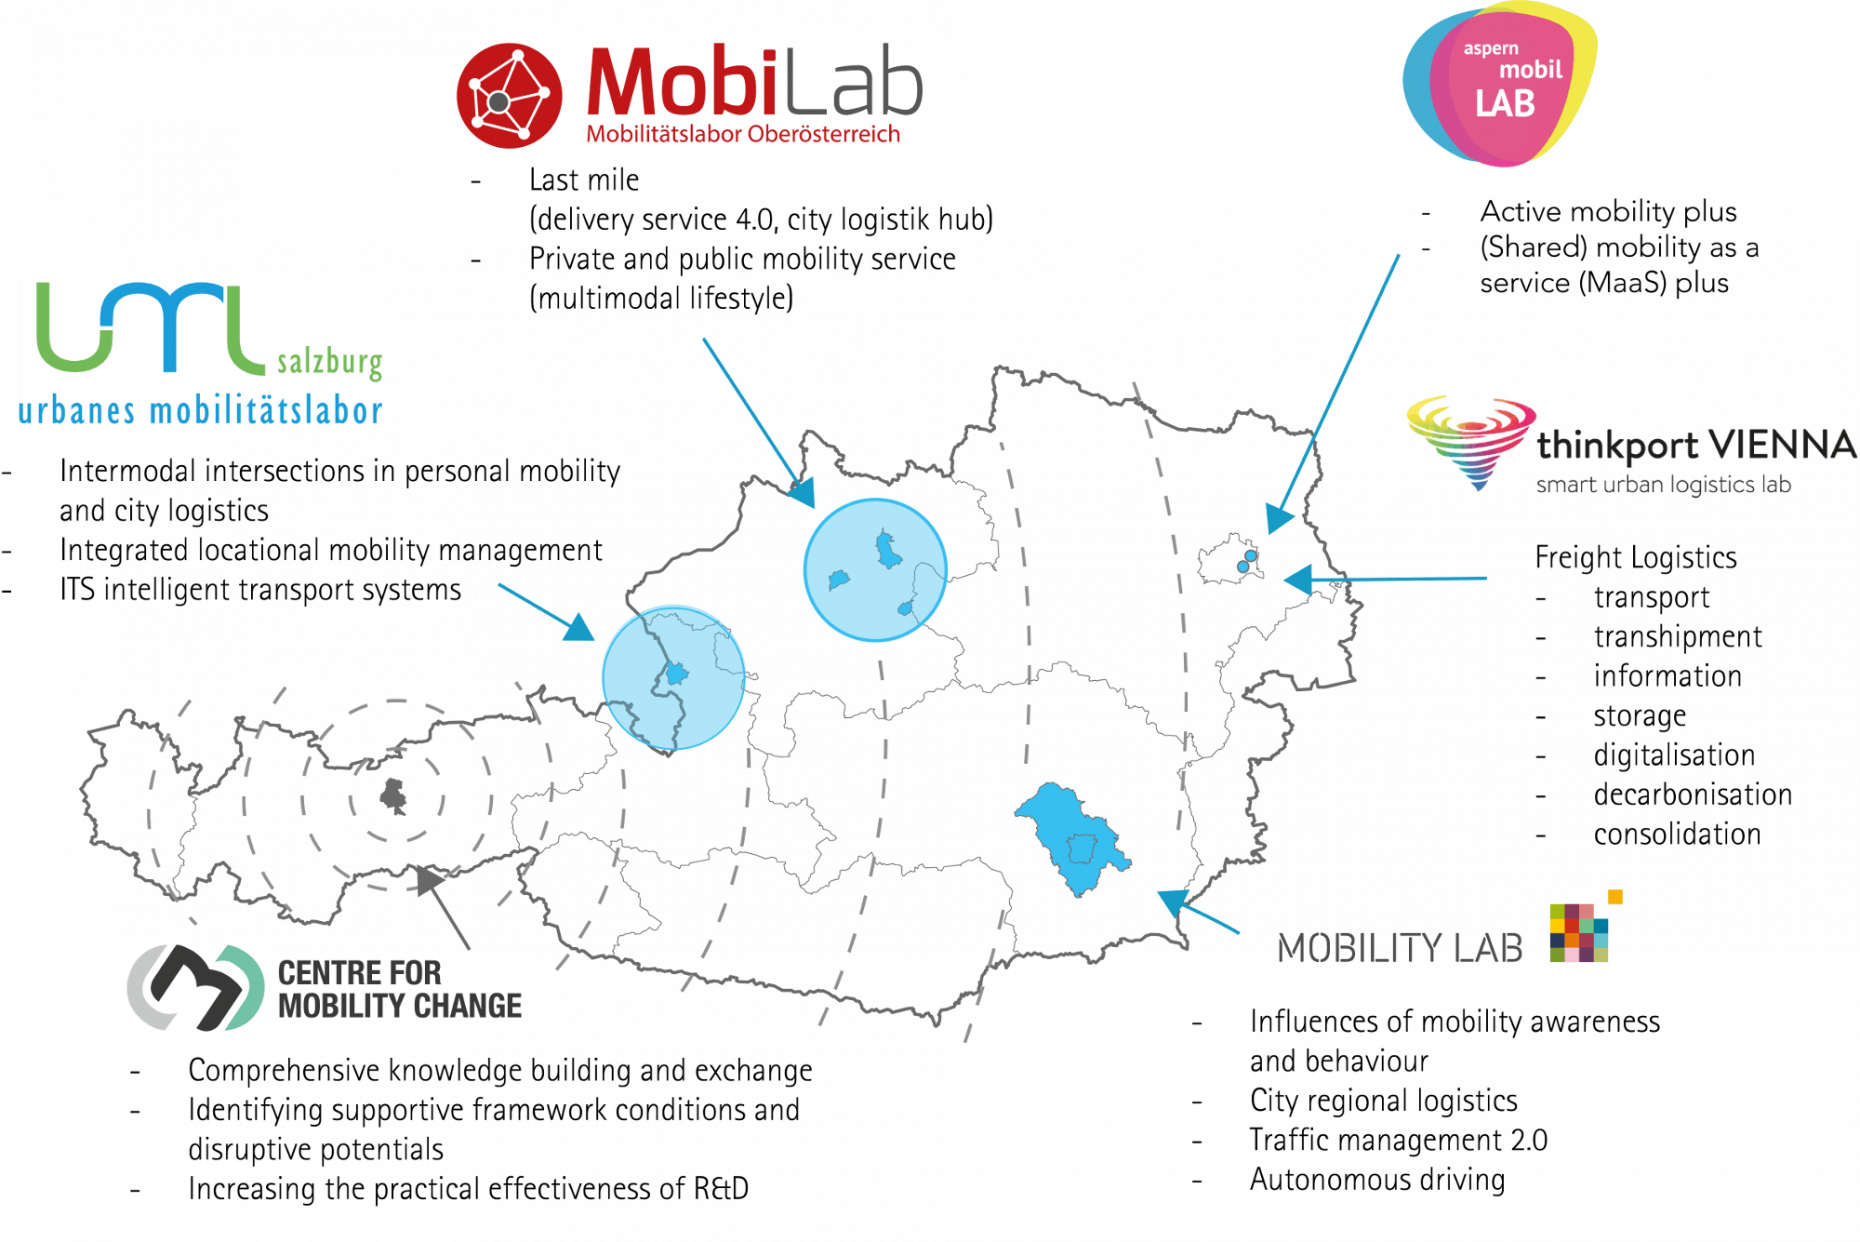 Austria Map with overview of the Mobility Labs in Austria